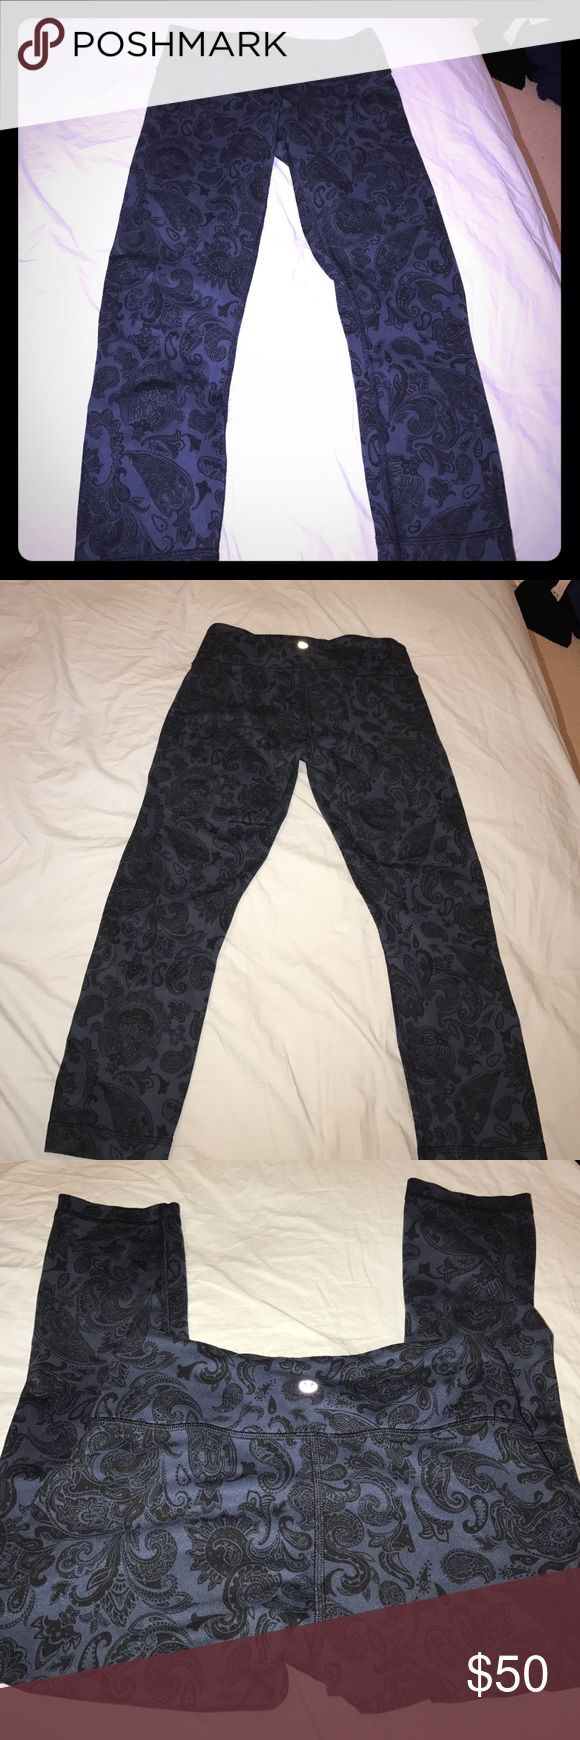 Lululemon Wunder Under Crops These no-fuss, versatile crops were designed to fit like a second skin—perfect for yoga or the gym. Navy and black paisley pattern. In amazing condition! lululemon athletica Pants Leggings